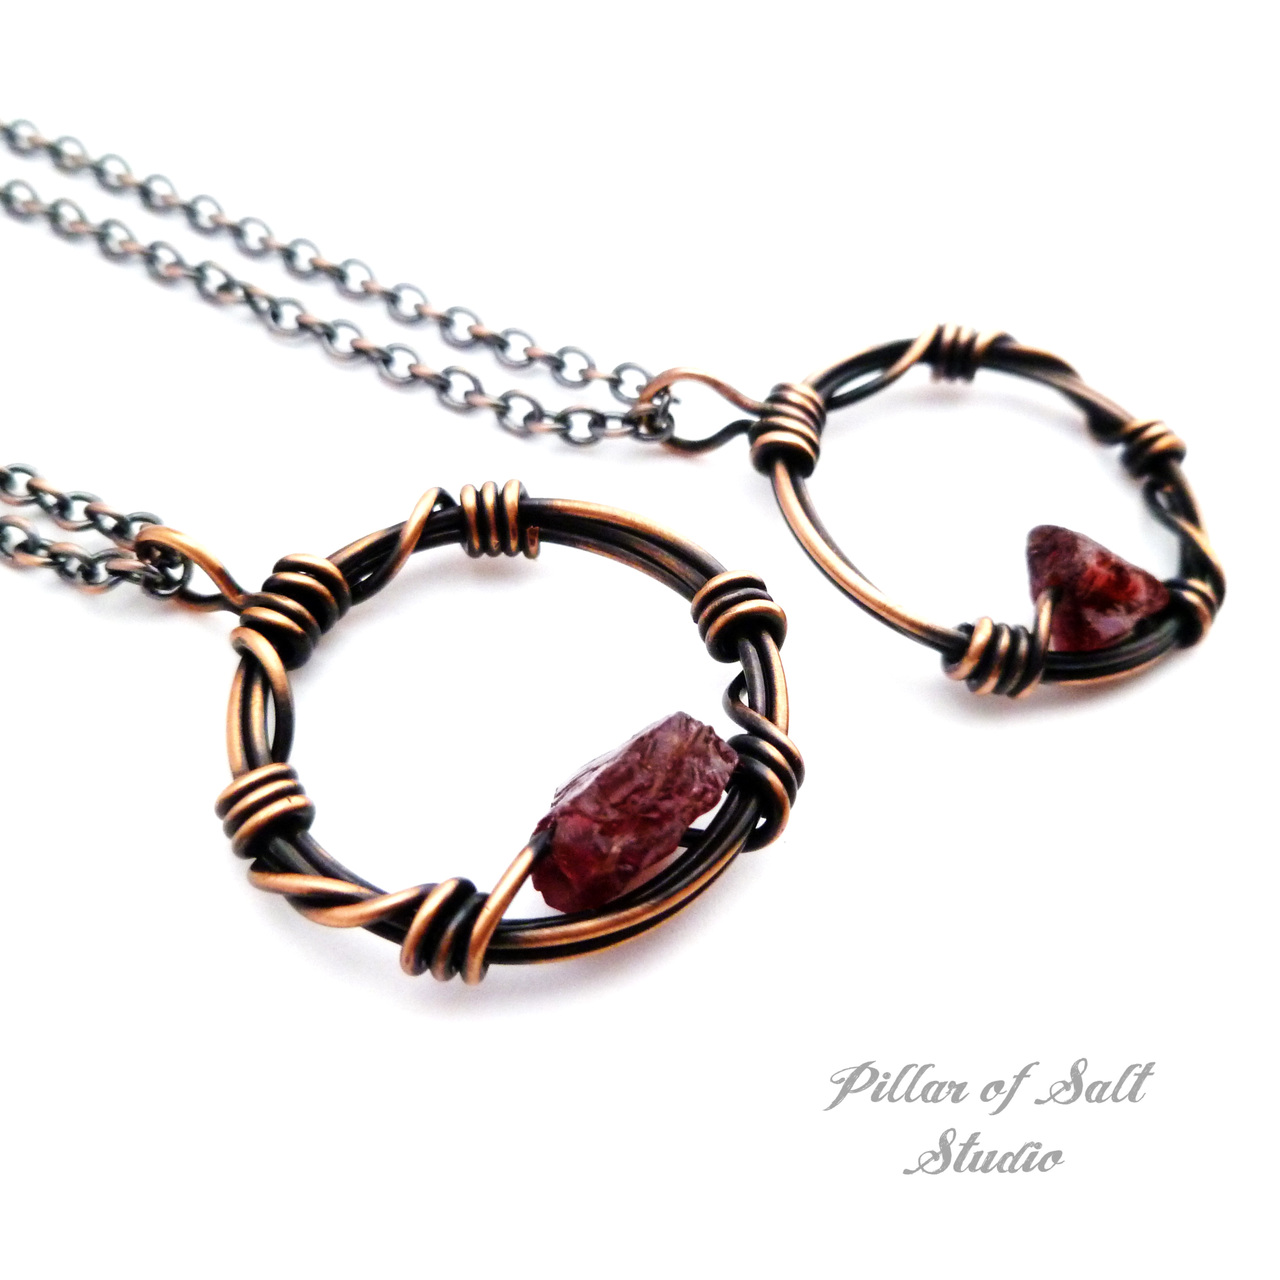 Copper wire wrapped circle pendant rough gemstone jewelry by Pillar of Salt Studio